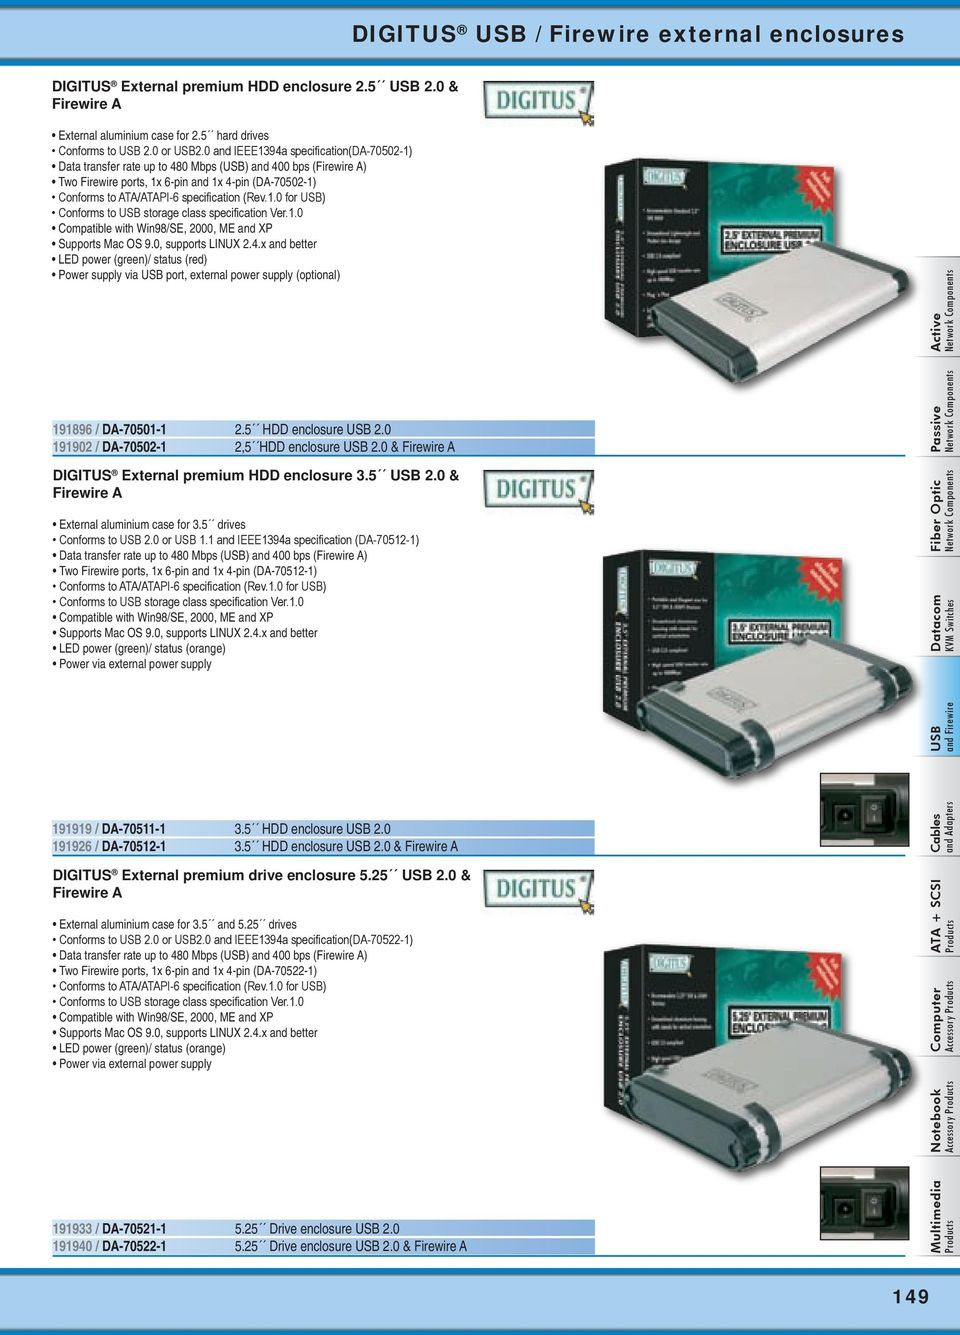 Usb And Firewire Digitus Hubs From Page 142 Card Notebook Ide Interface Cdrom To External Drive Circuit Boardred Rev10 For Conforms Storage Class Specification Ver10 Compatible With 10 Enclosures Hdd